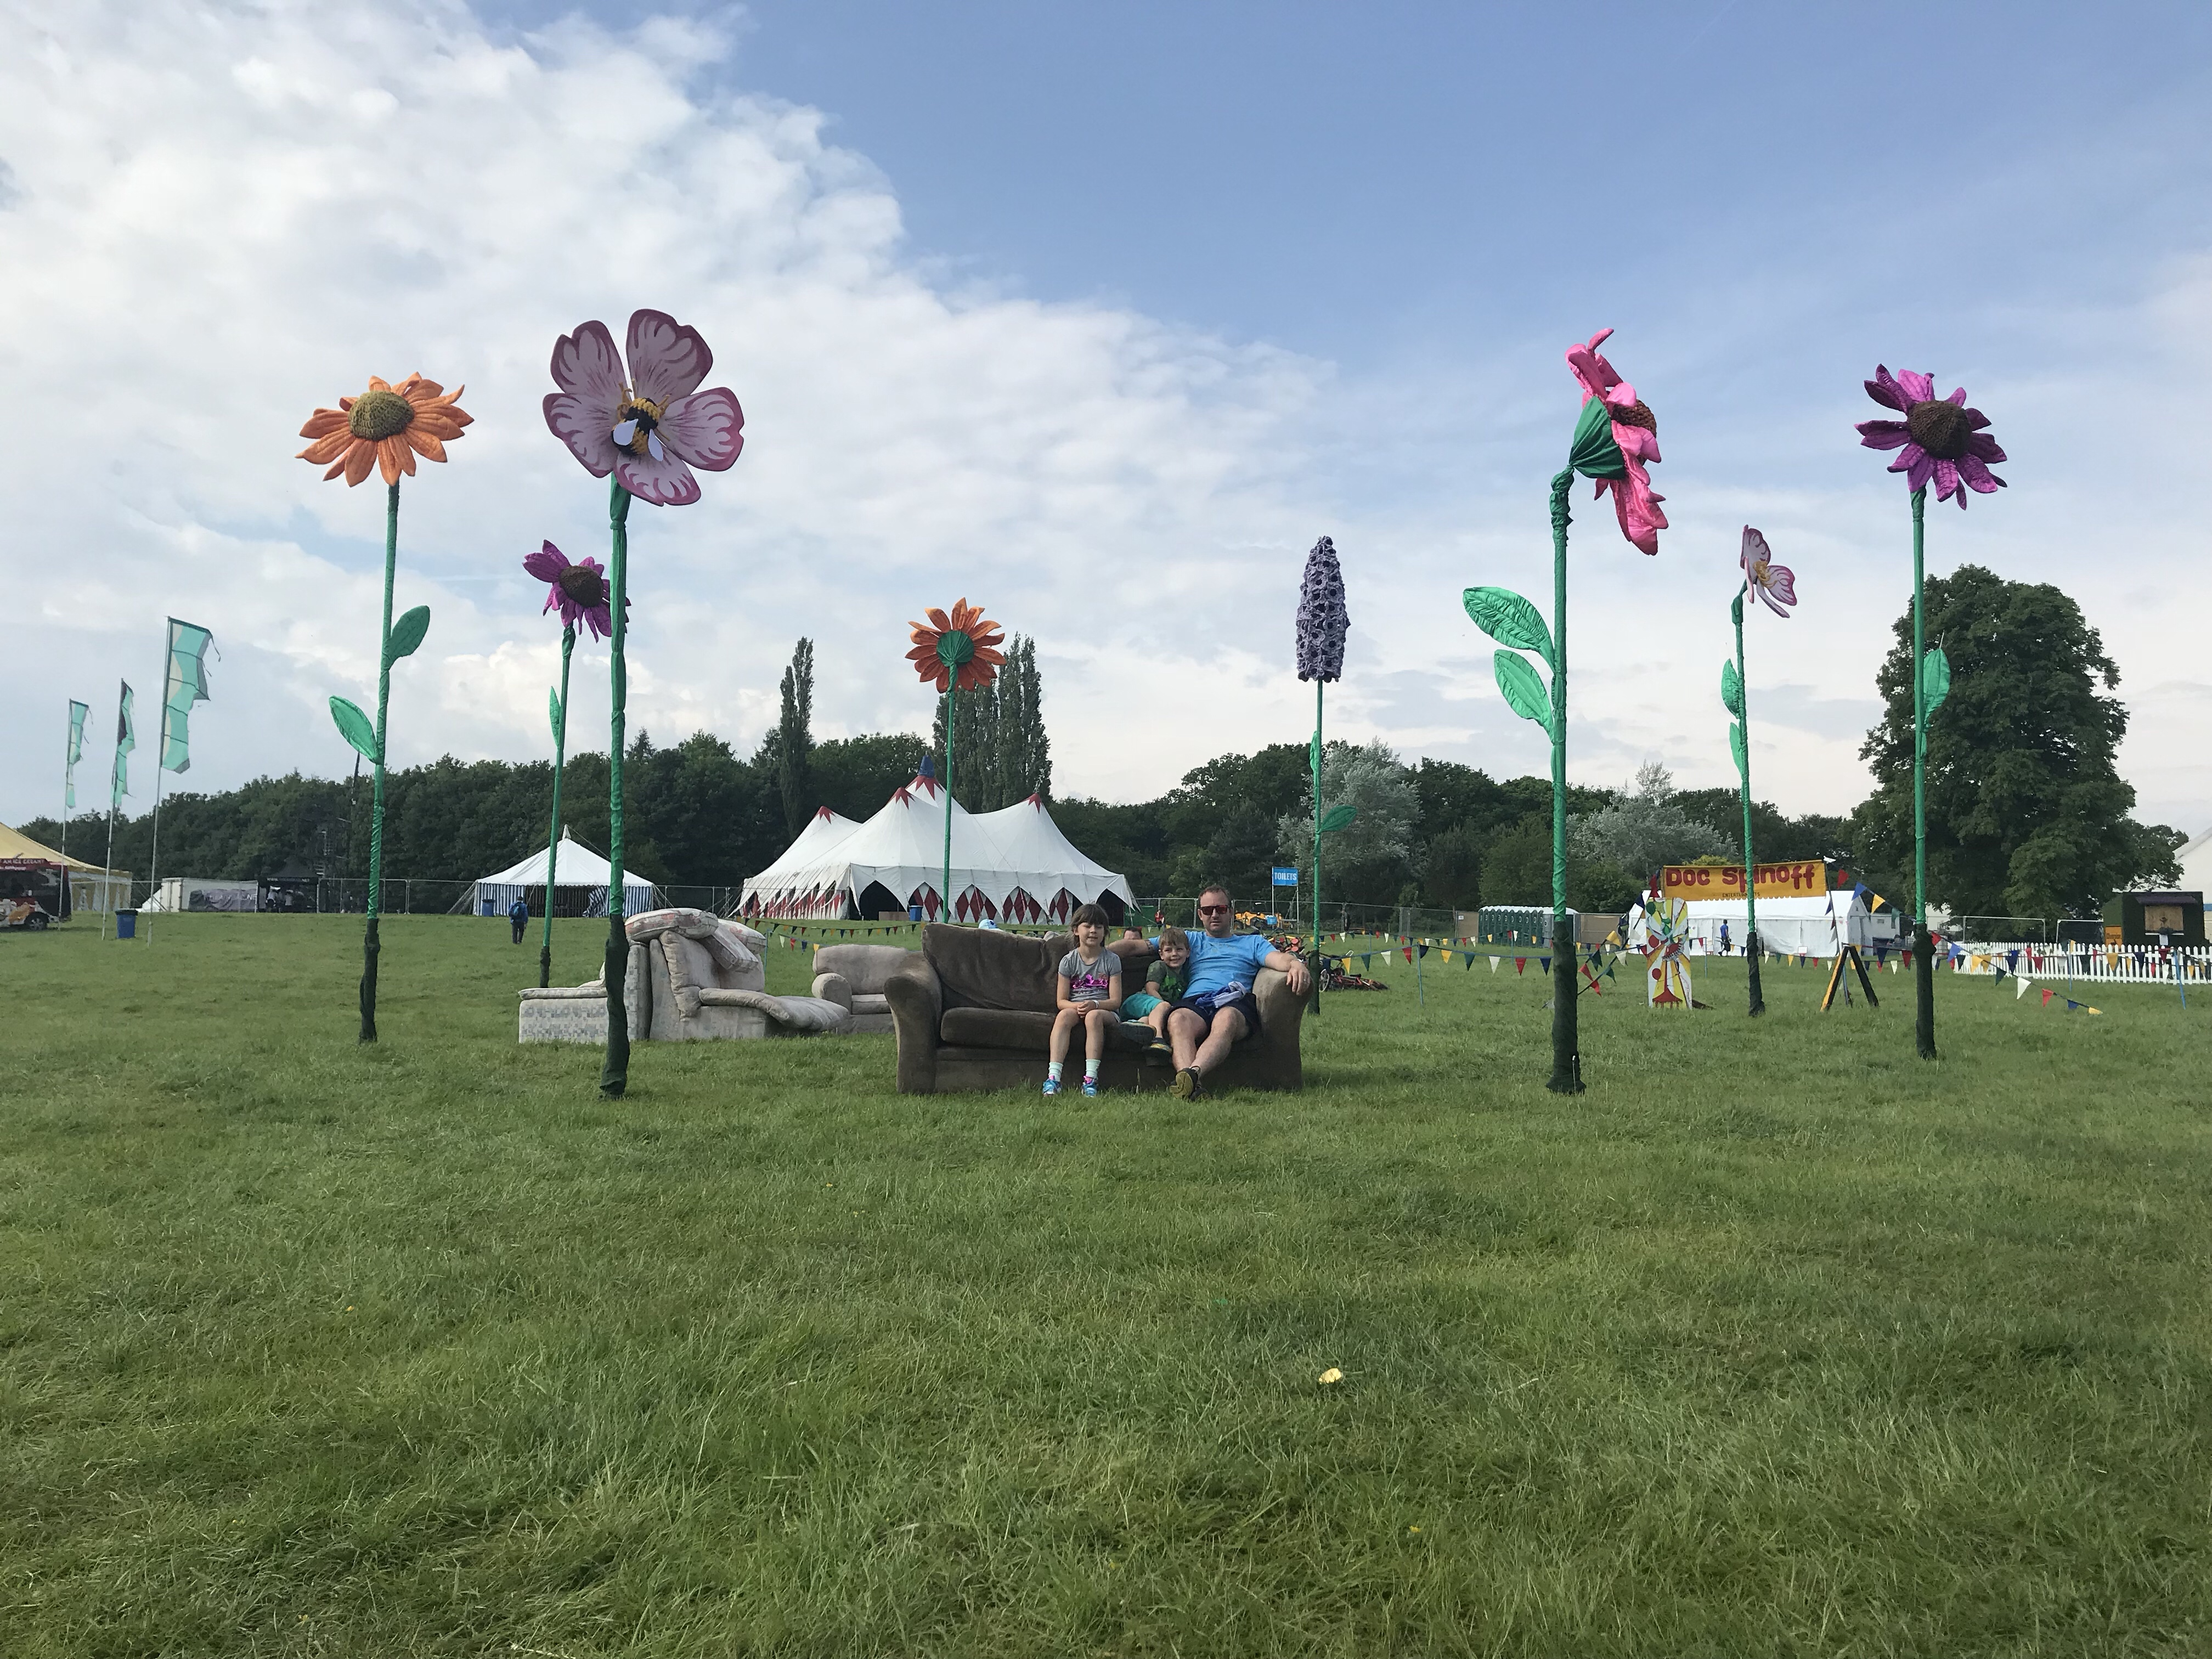 My husband and two children sitting on a sofa outdoors at Geronimo Festival with giant flowers all around them.